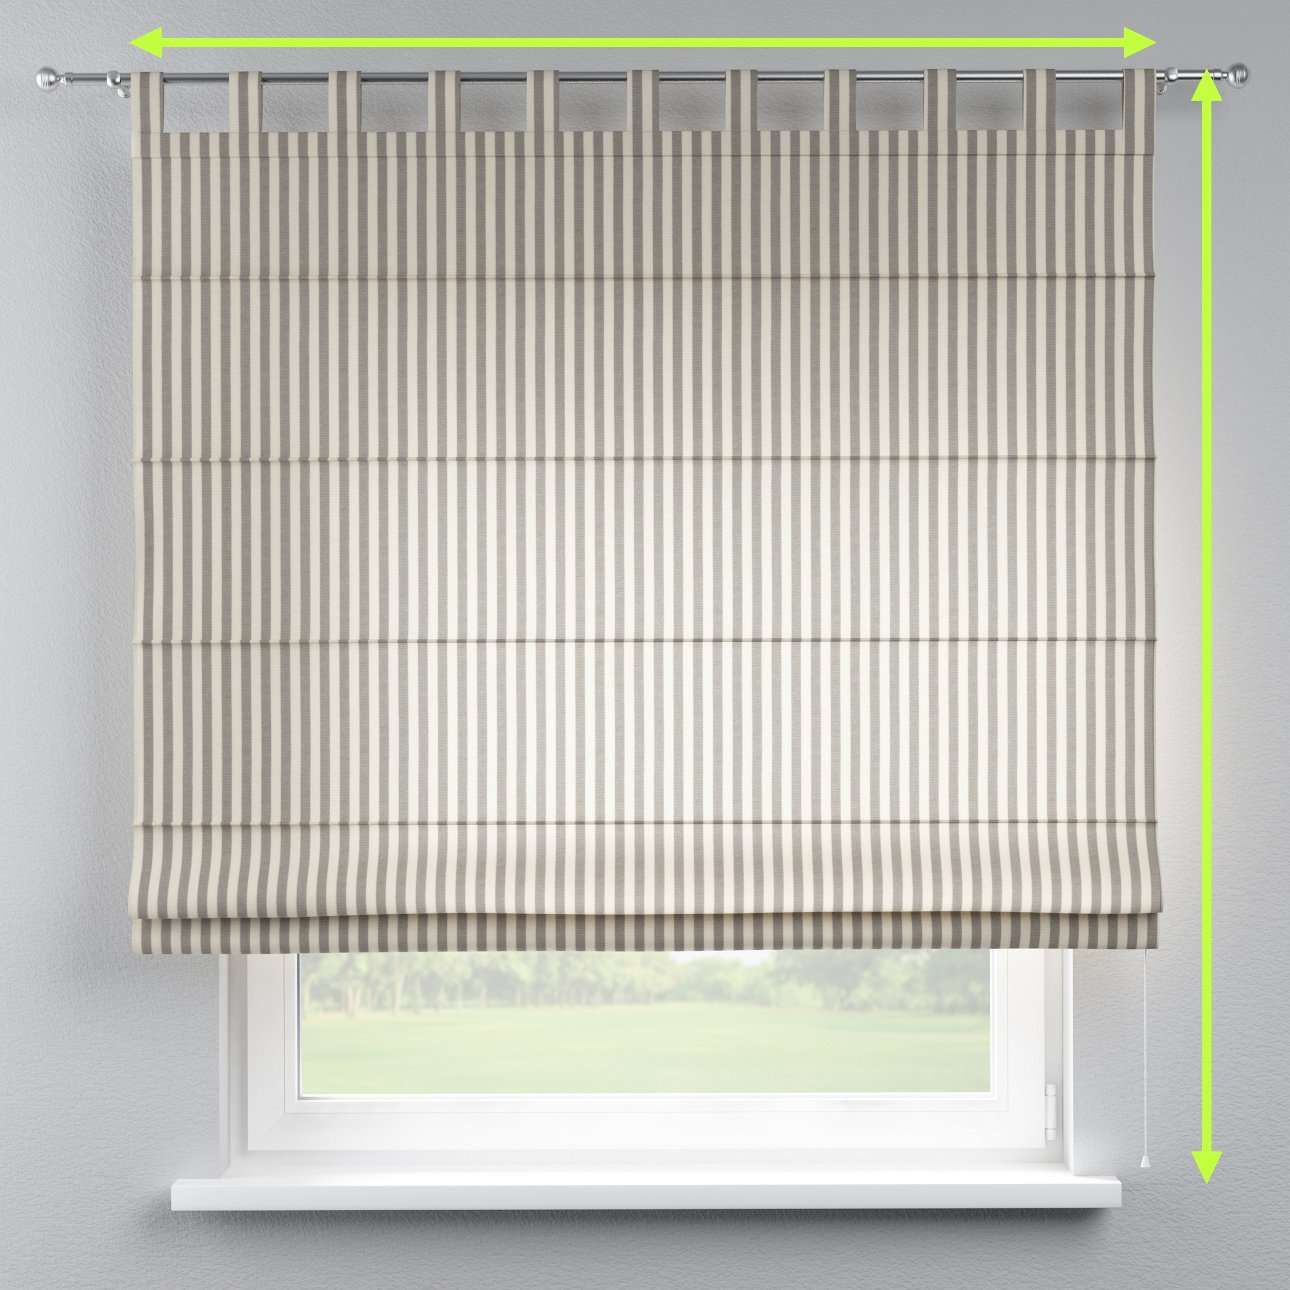 Verona tab top roman blind in collection Quadro, fabric: 136-12